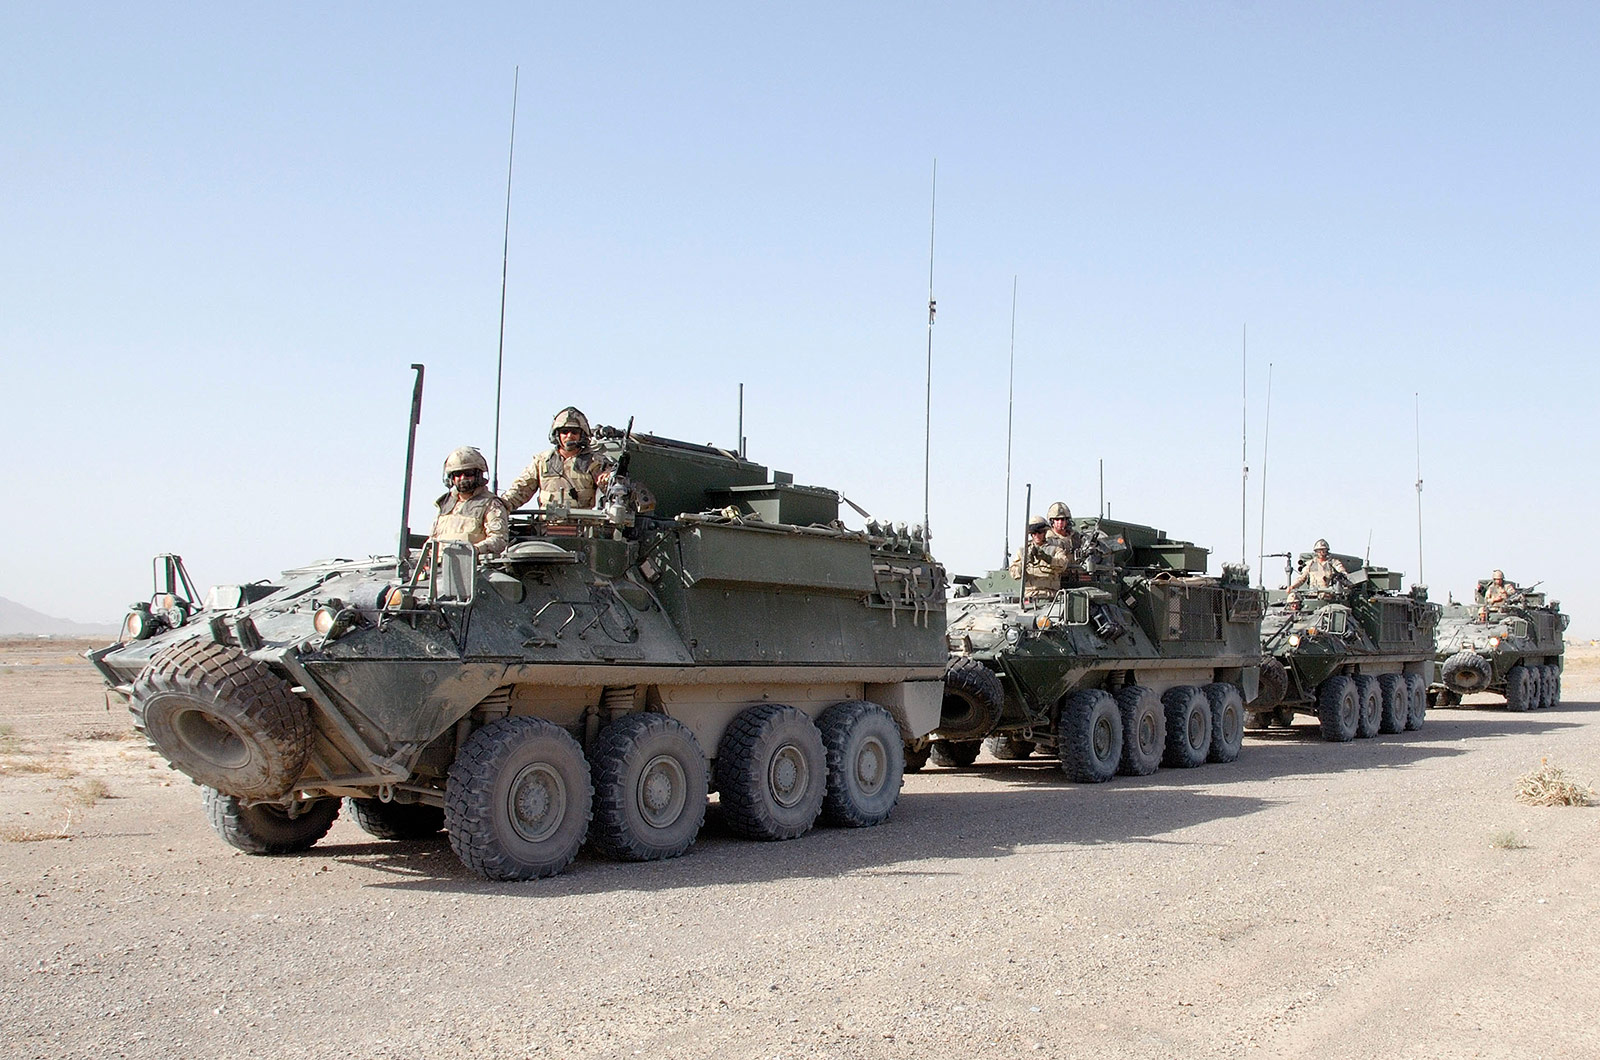 Photo: Bison Light Armoured Vehicle (LAV), Canadian Forces, International Security Assistance Force, Kandahar, Afghanistan.